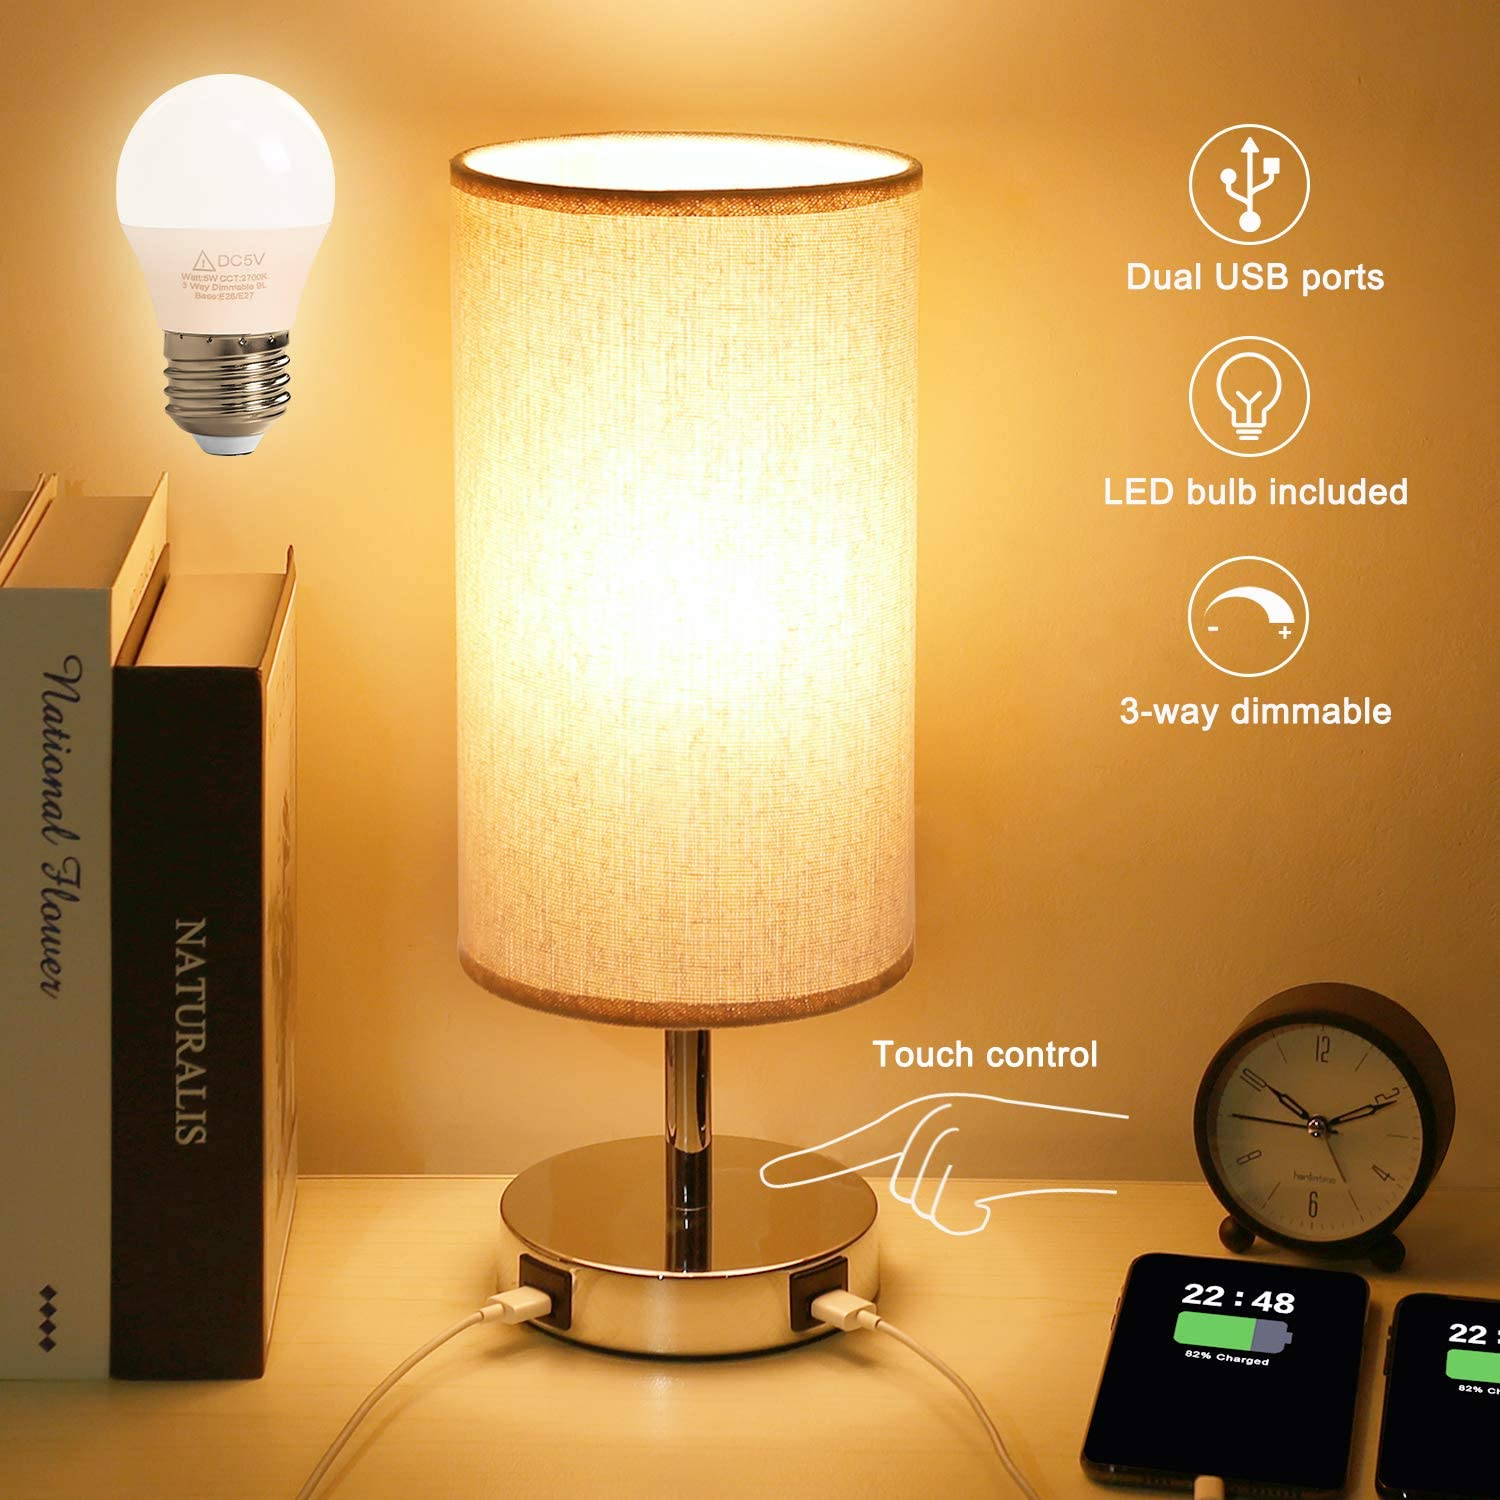 Touch Control Table Lamp, USB Touch Lamps with 2 Fast Charging USB Ports Power Outlet, 3 Way Dimmable Bedside Nightstand Lamp, Modern Desk Light for Bedroom Living Room Home Office(LED Bulb Included)